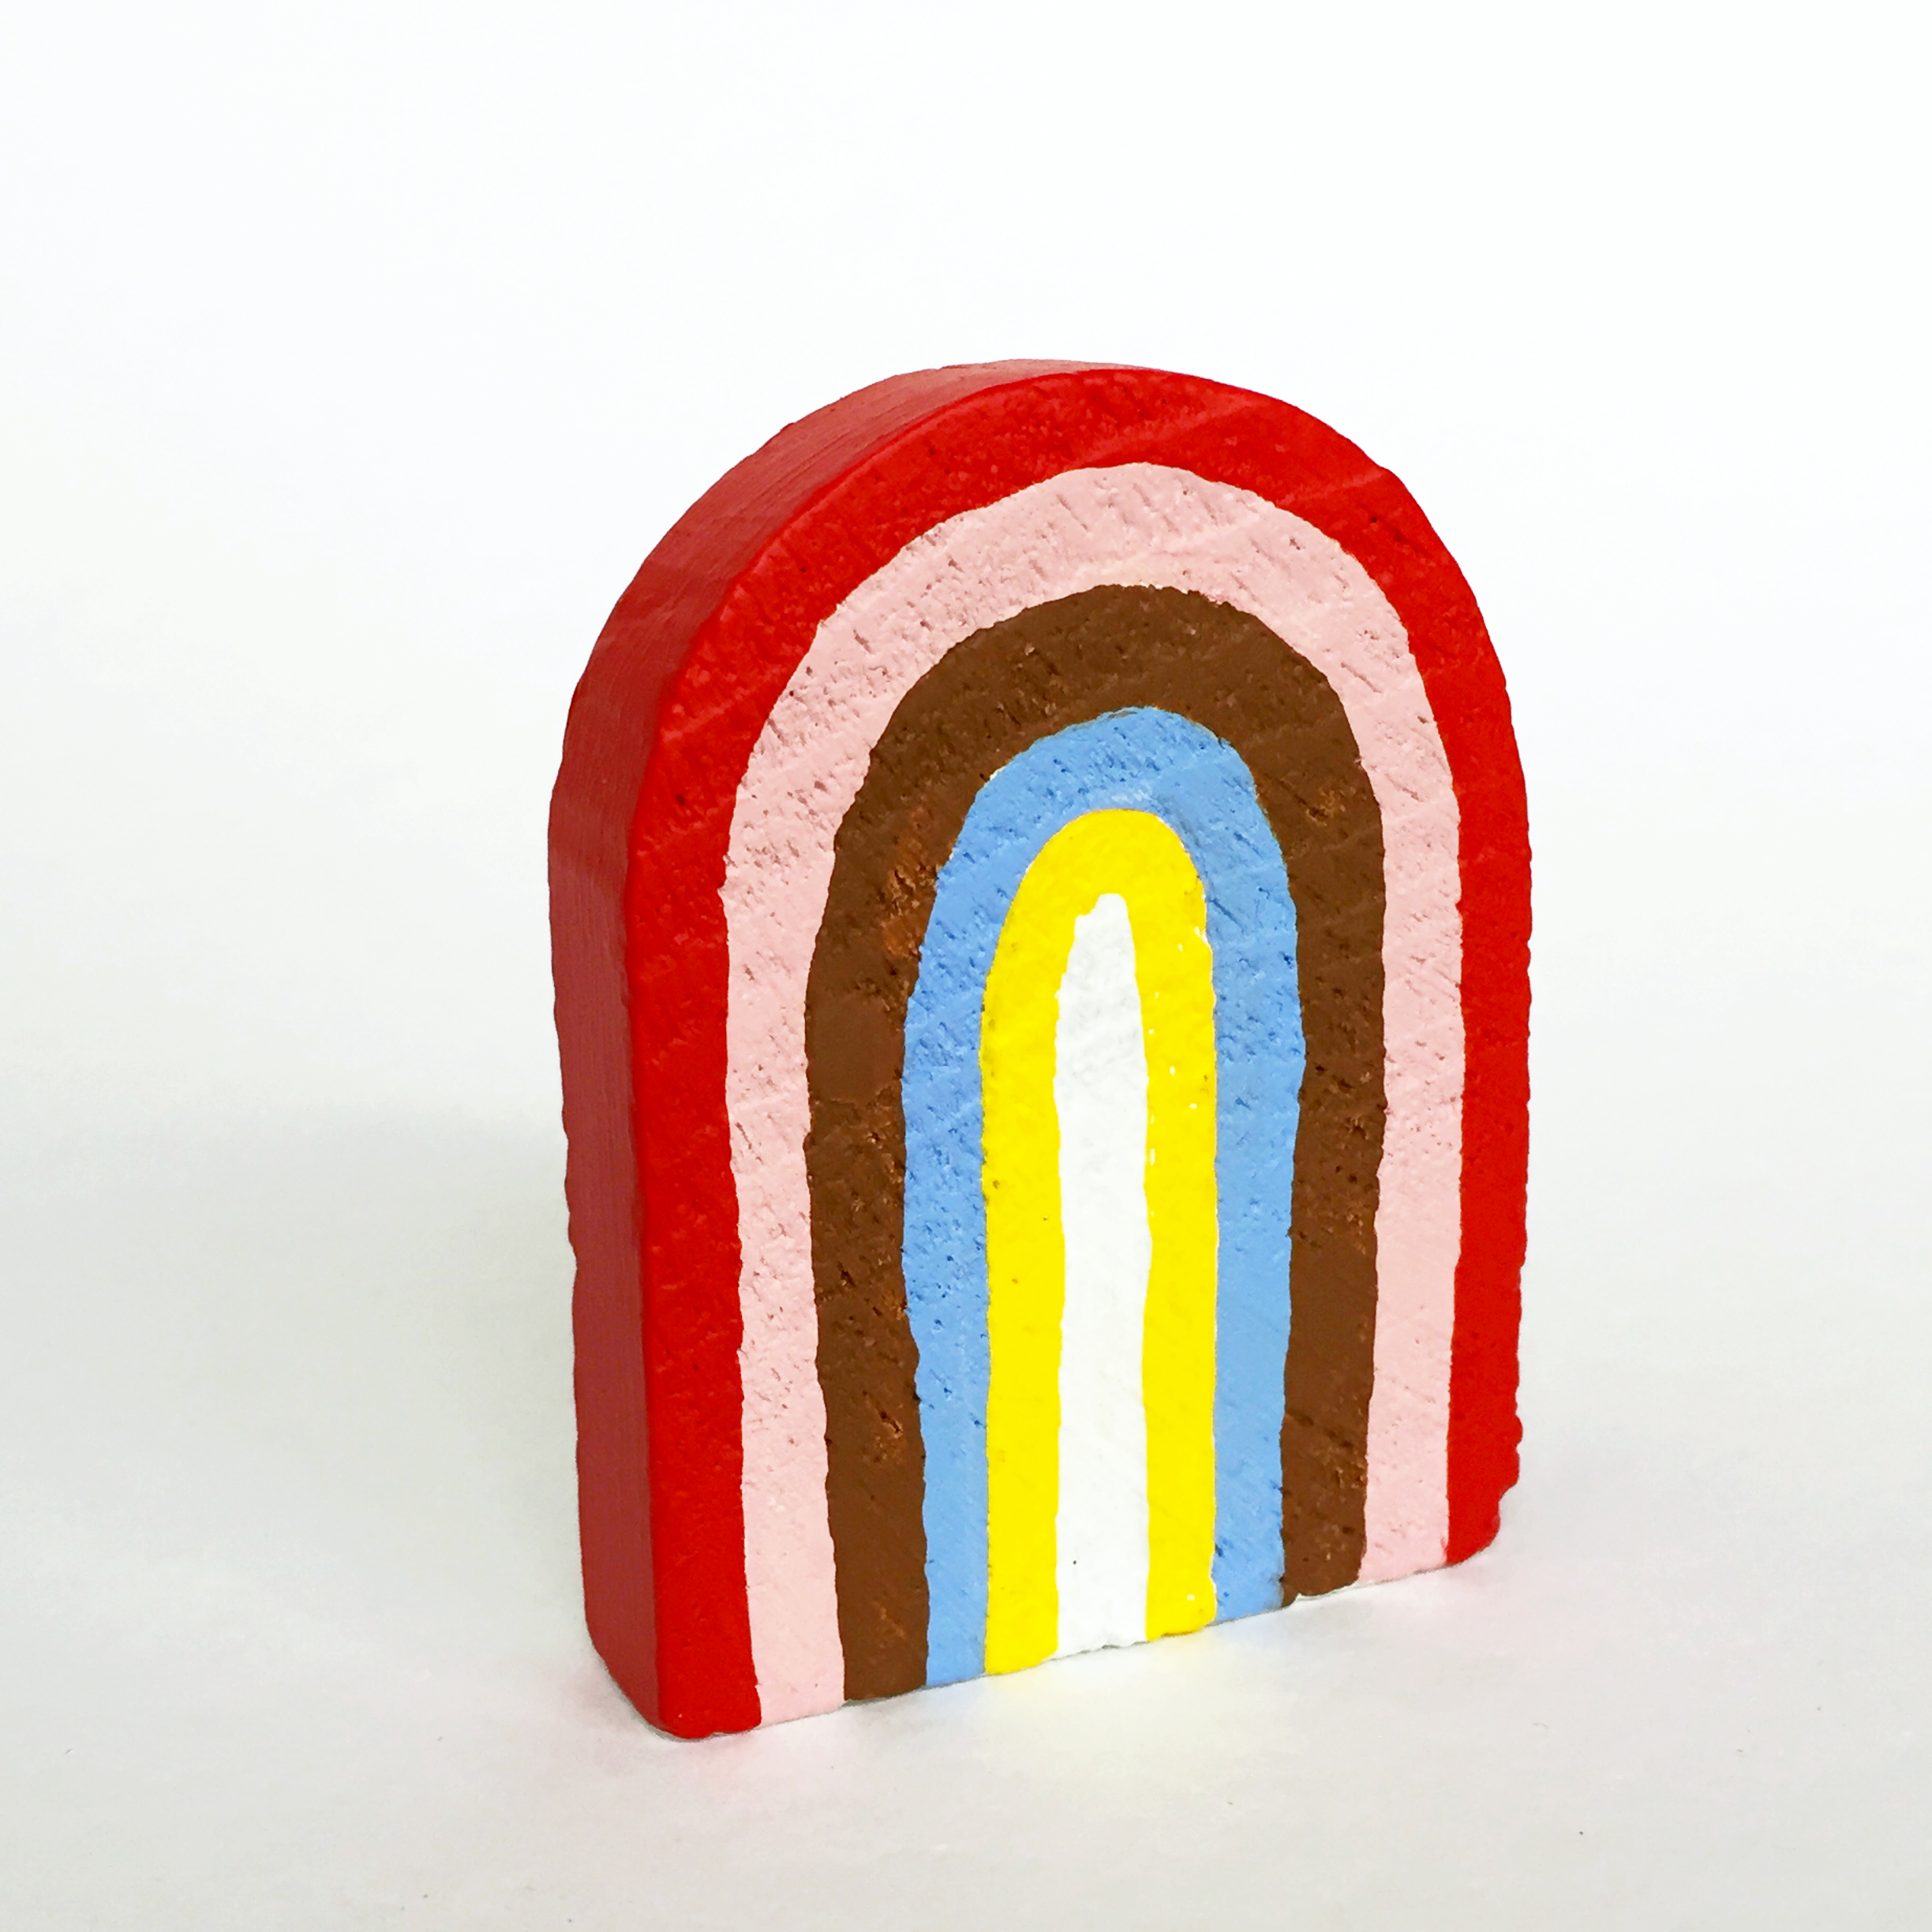 Rainbow #2, 2019, small object, found wood shape, acrylic paint, 65mm x 50mm